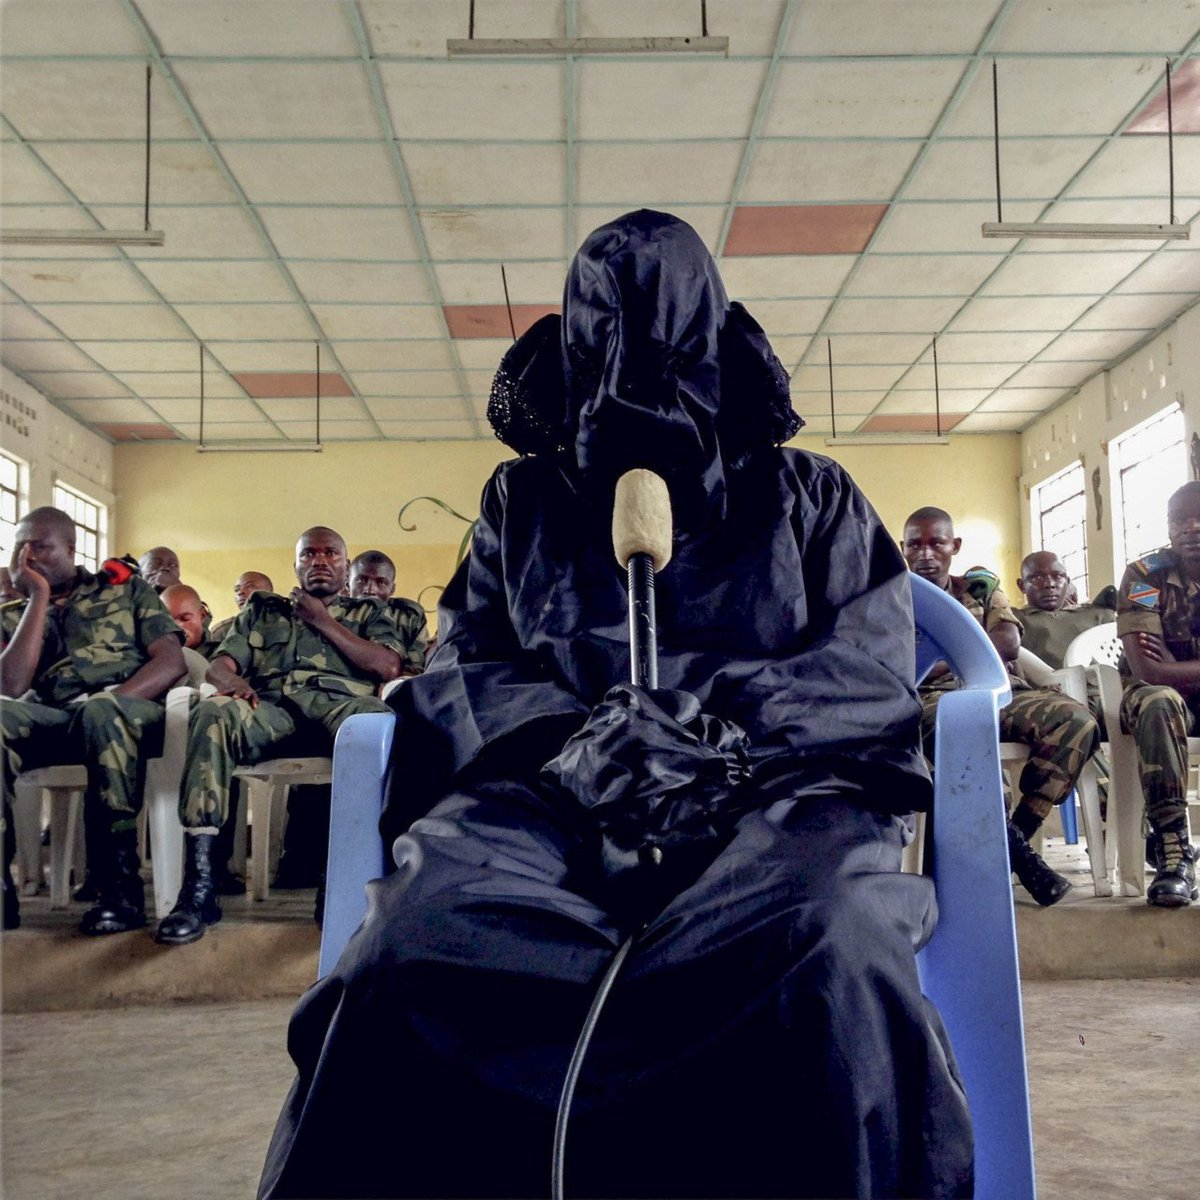 """Democratic Republic of Congo. Minova. 2014. """"A veiled rape survivor testifies while accused Congolese soldiers are sitting behind her."""" phot Michael Christopher Brown <br>http://pic.twitter.com/thBfmq3Vok"""